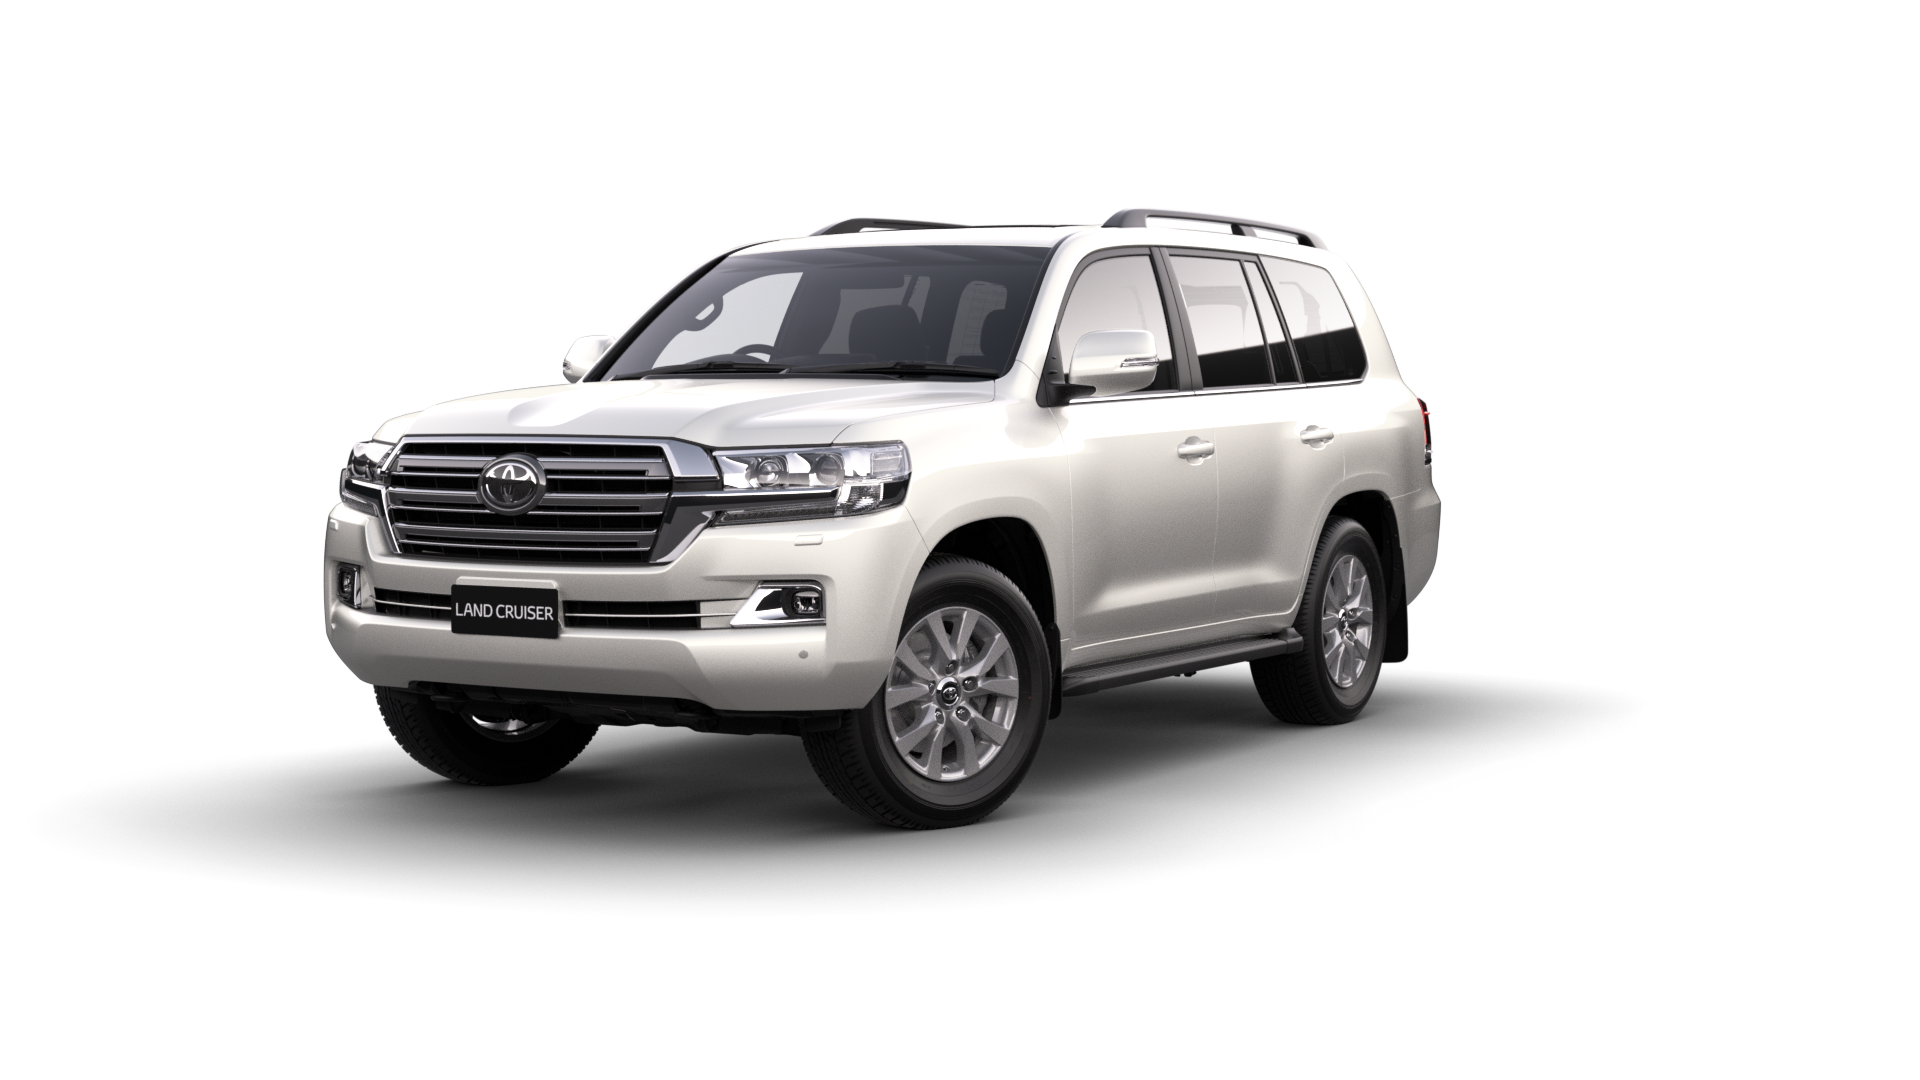 Toyota LandCruiser 200 VX in Onyx Blue